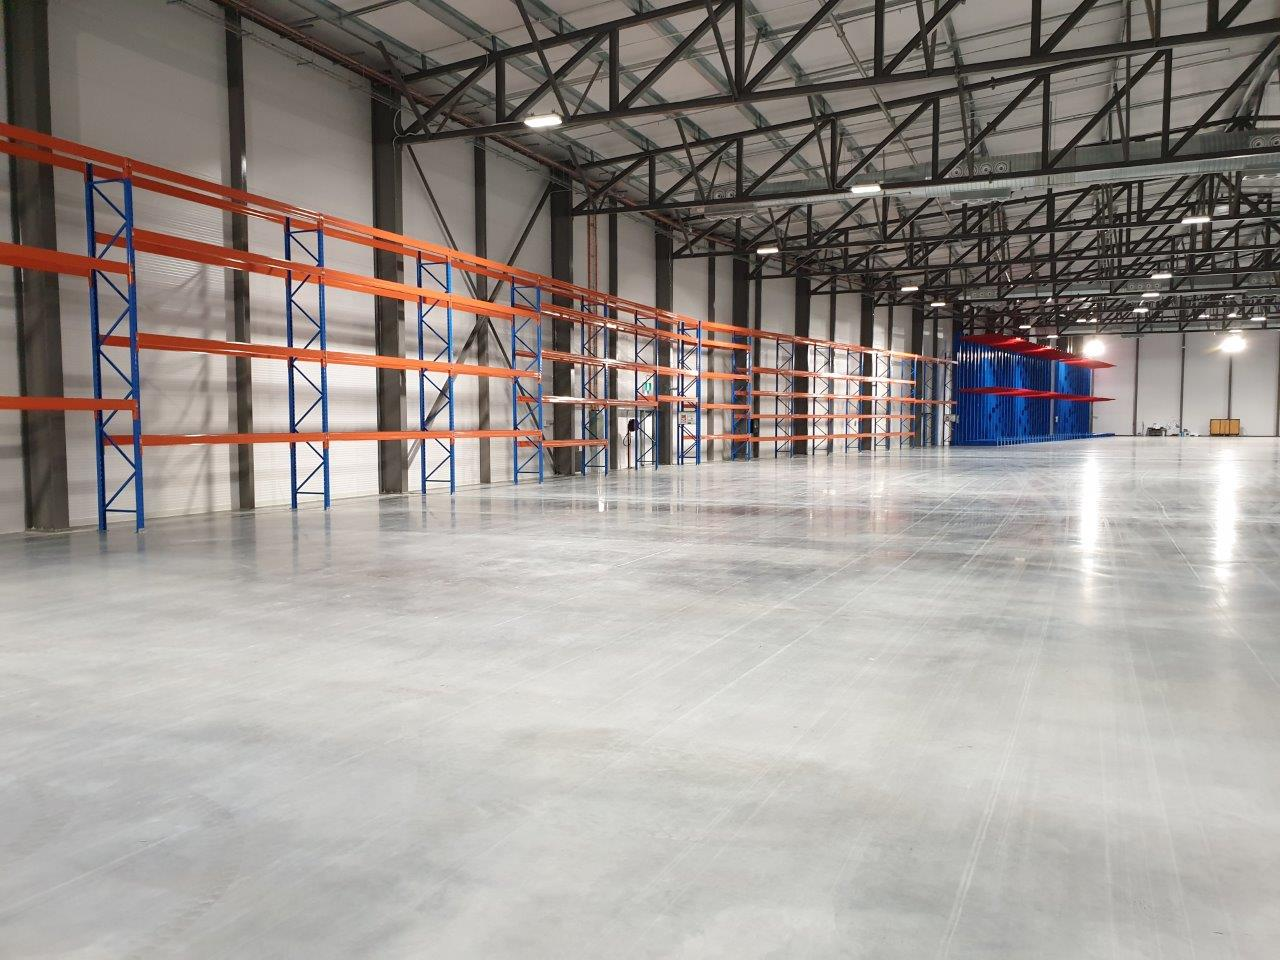 empty warehouse with several blue and orange goods shelf